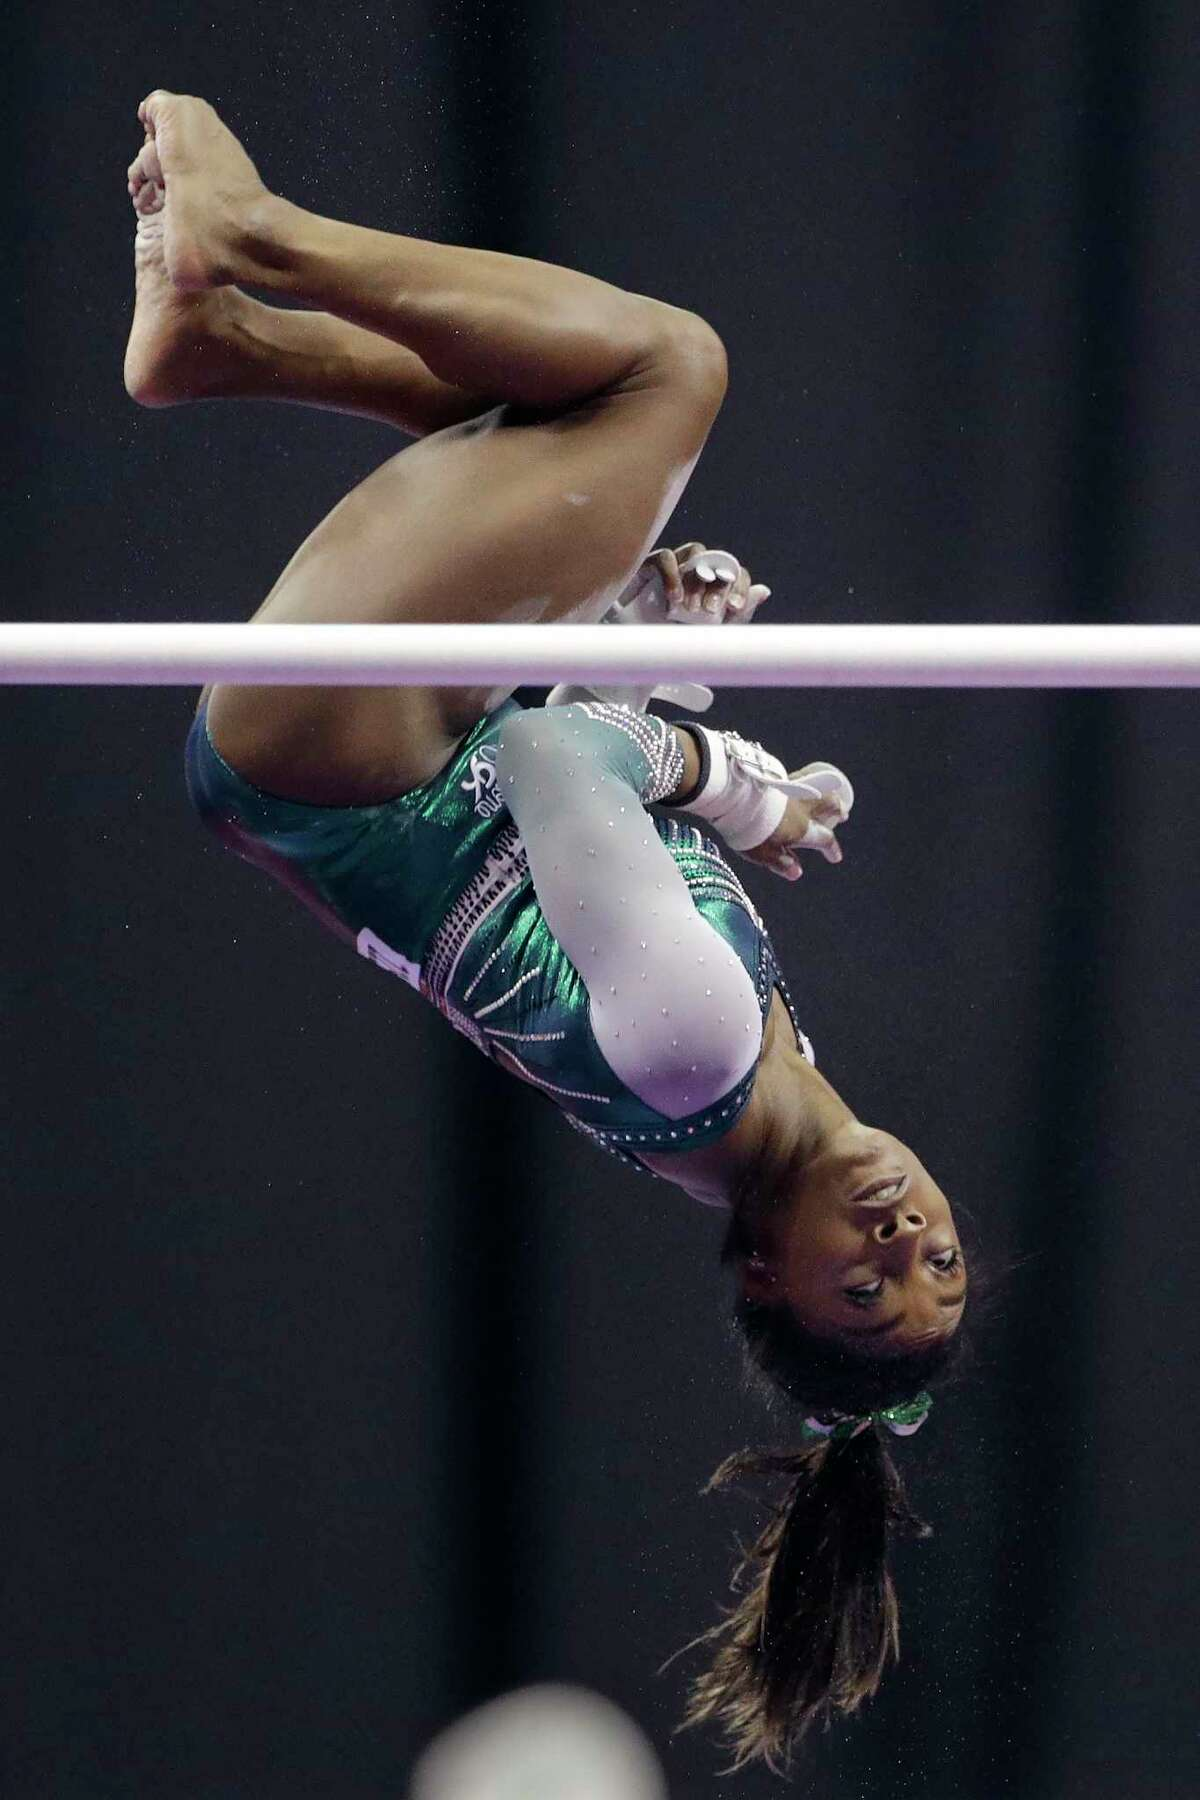 Simone Biles competes on the uneven bars during the senior women's competition at the U.S. Gymnastics Championships, Friday, Aug. 9, 2019, in Kansas City, Mo. (AP Photo/Charlie Riedel)